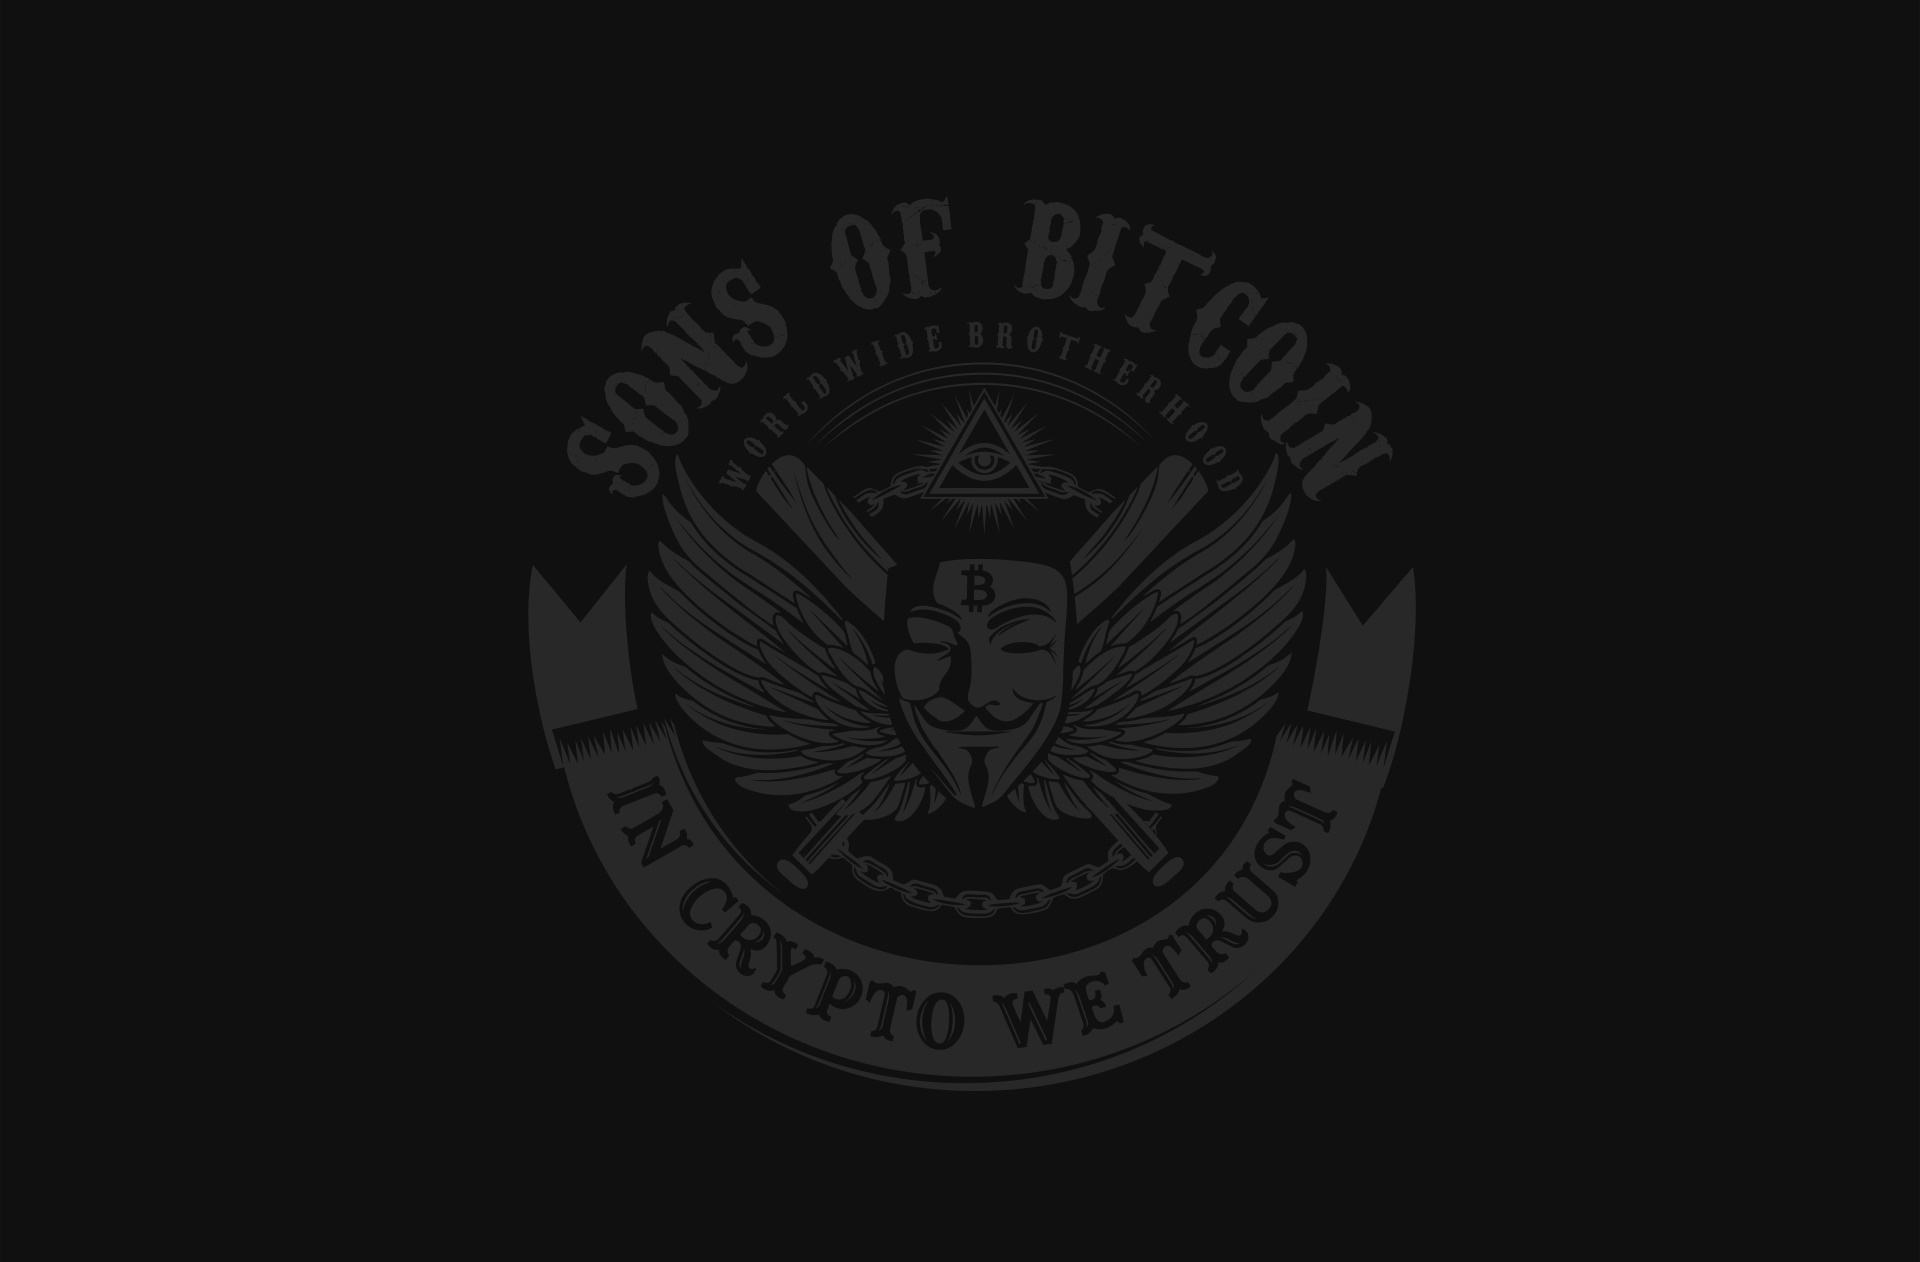 Sons of Bitcoin